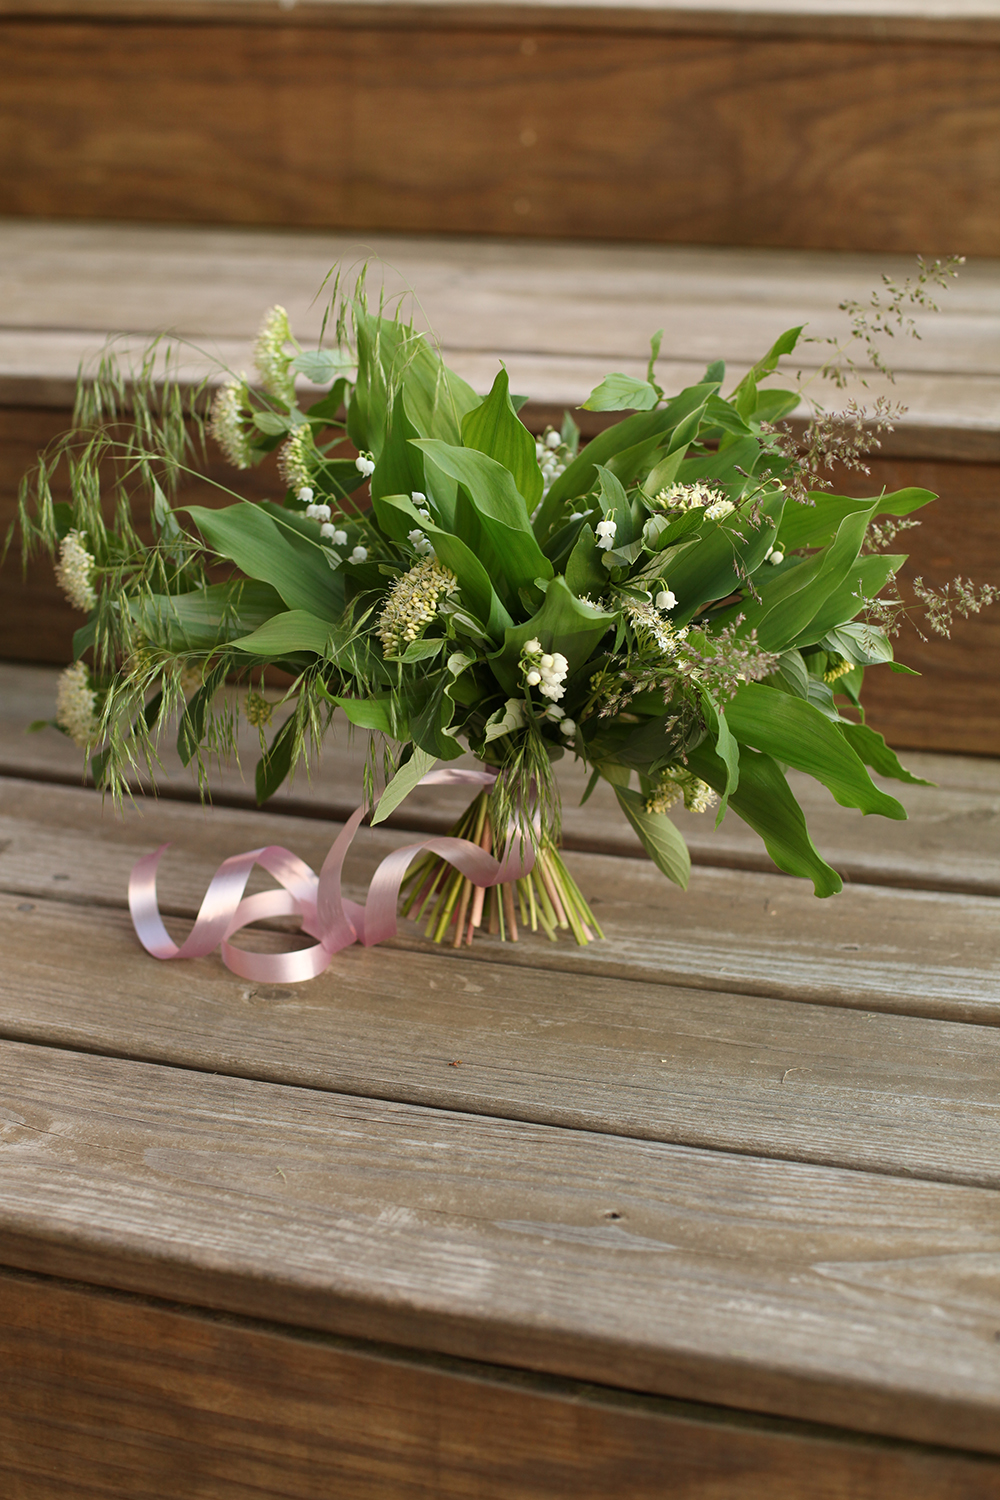 locally-sourced bouquet, by florist Floral Verde LLC in Cincinnati, Ohio; with lily of the valley, viburnum and grass